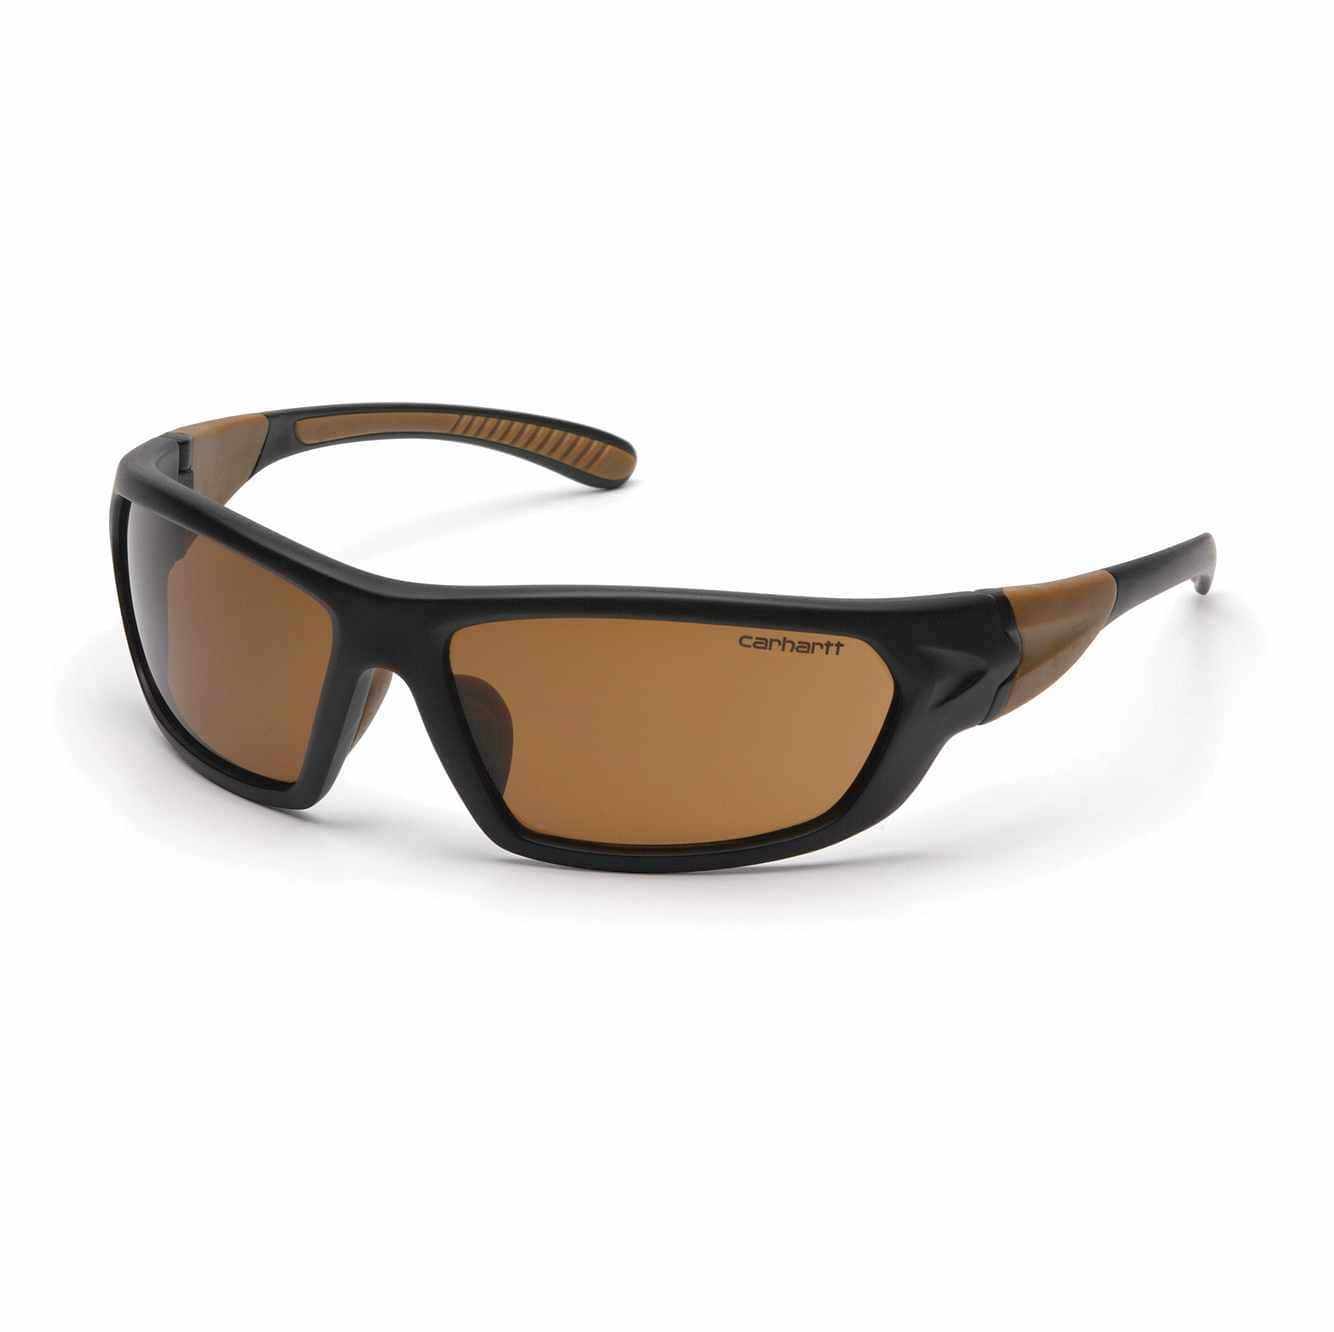 Picture of Carbondale Safety Glasses in Bronze